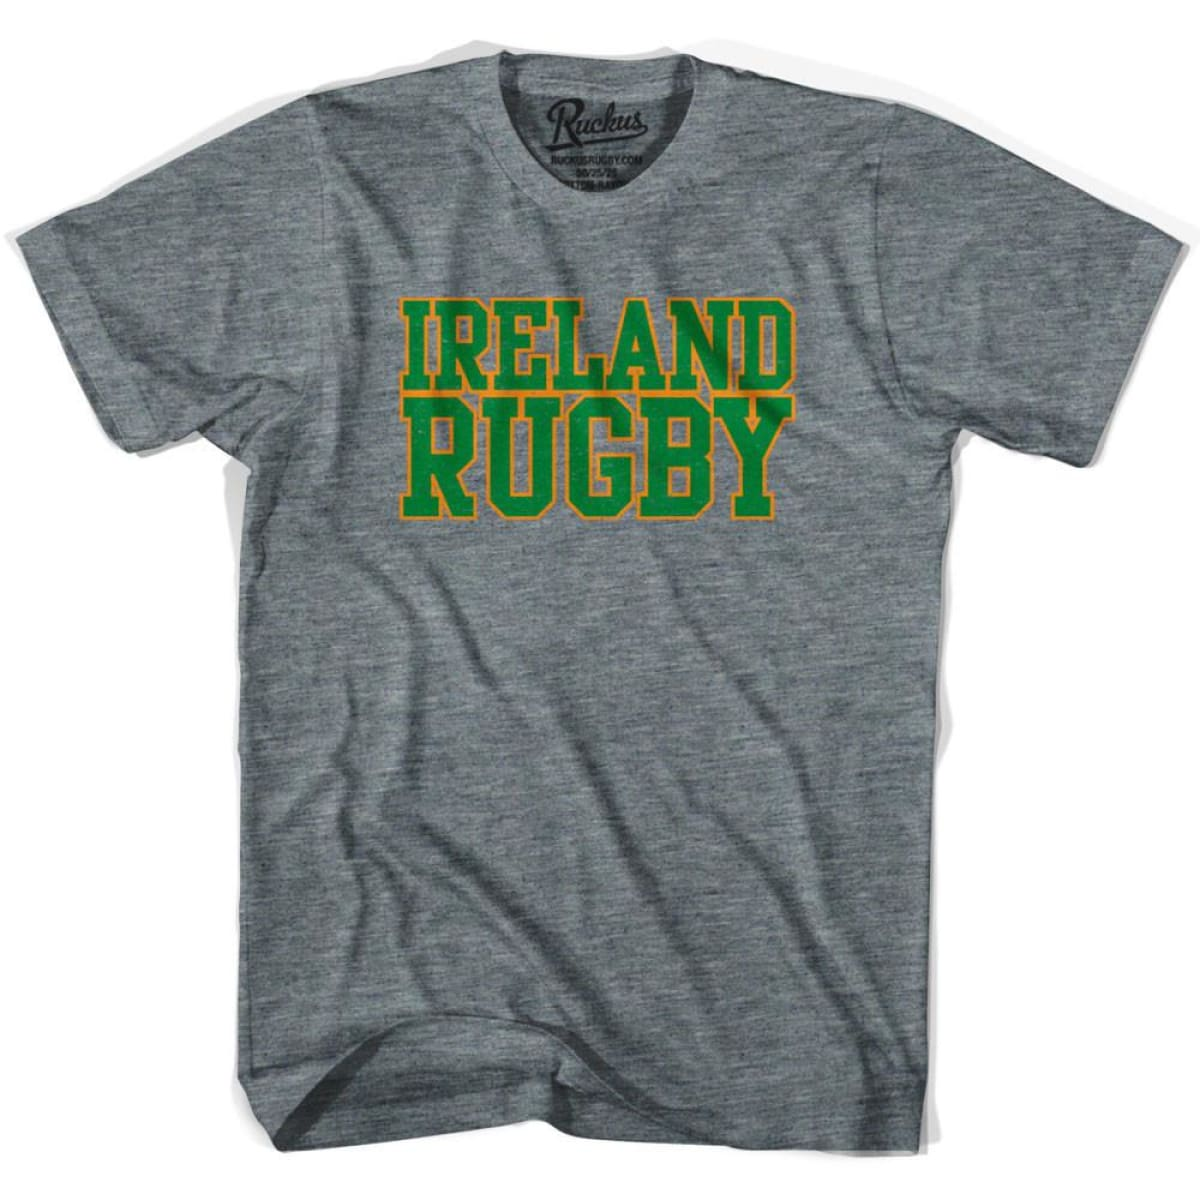 Ireland Rugby Nations T-shirt - Athletic Grey / Adult Small - Rugby T-shirt